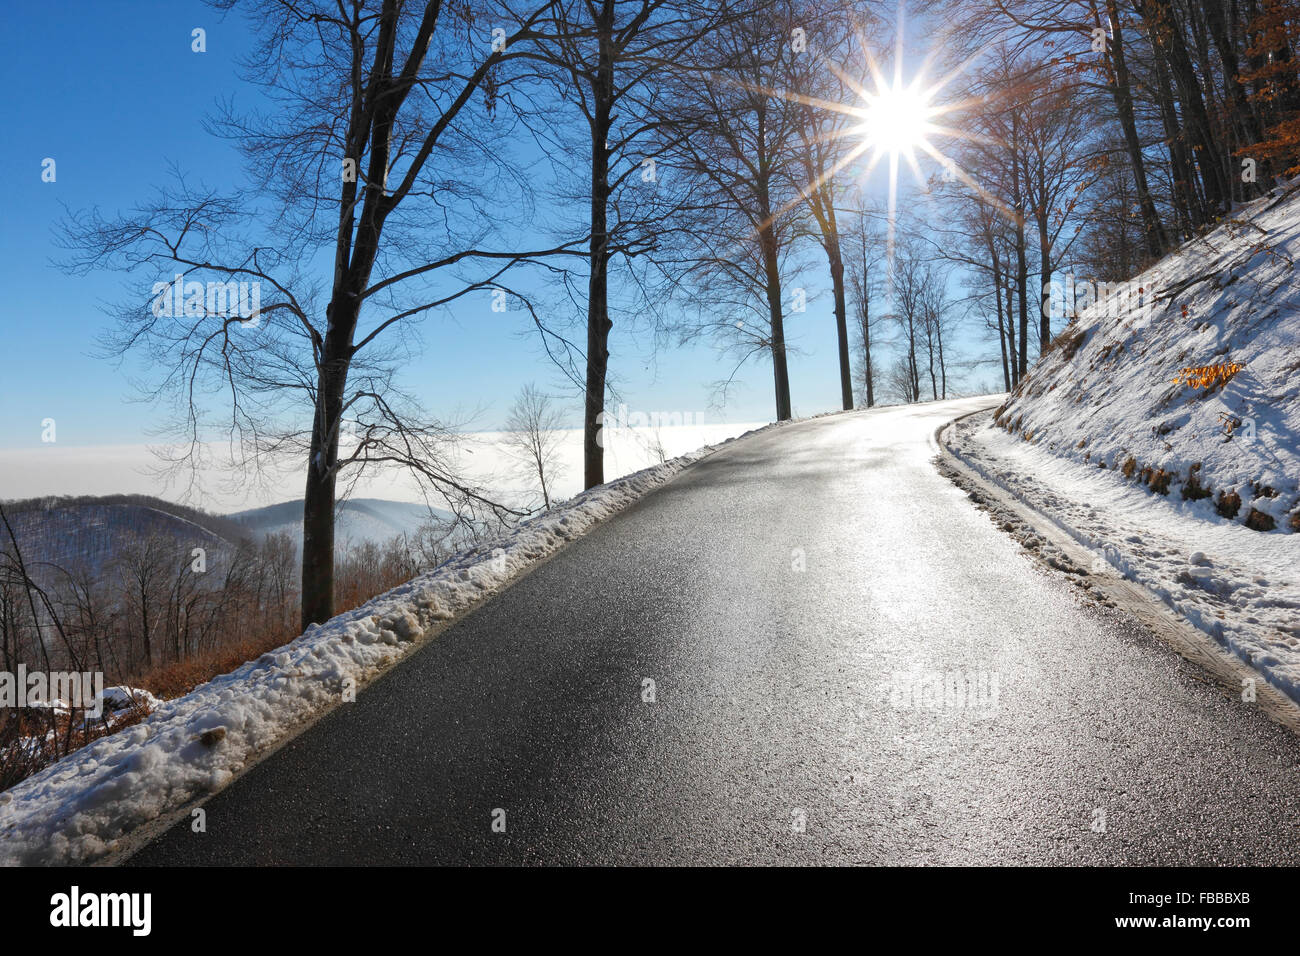 Empty road in winter with sun beam in the sky - Stock Image